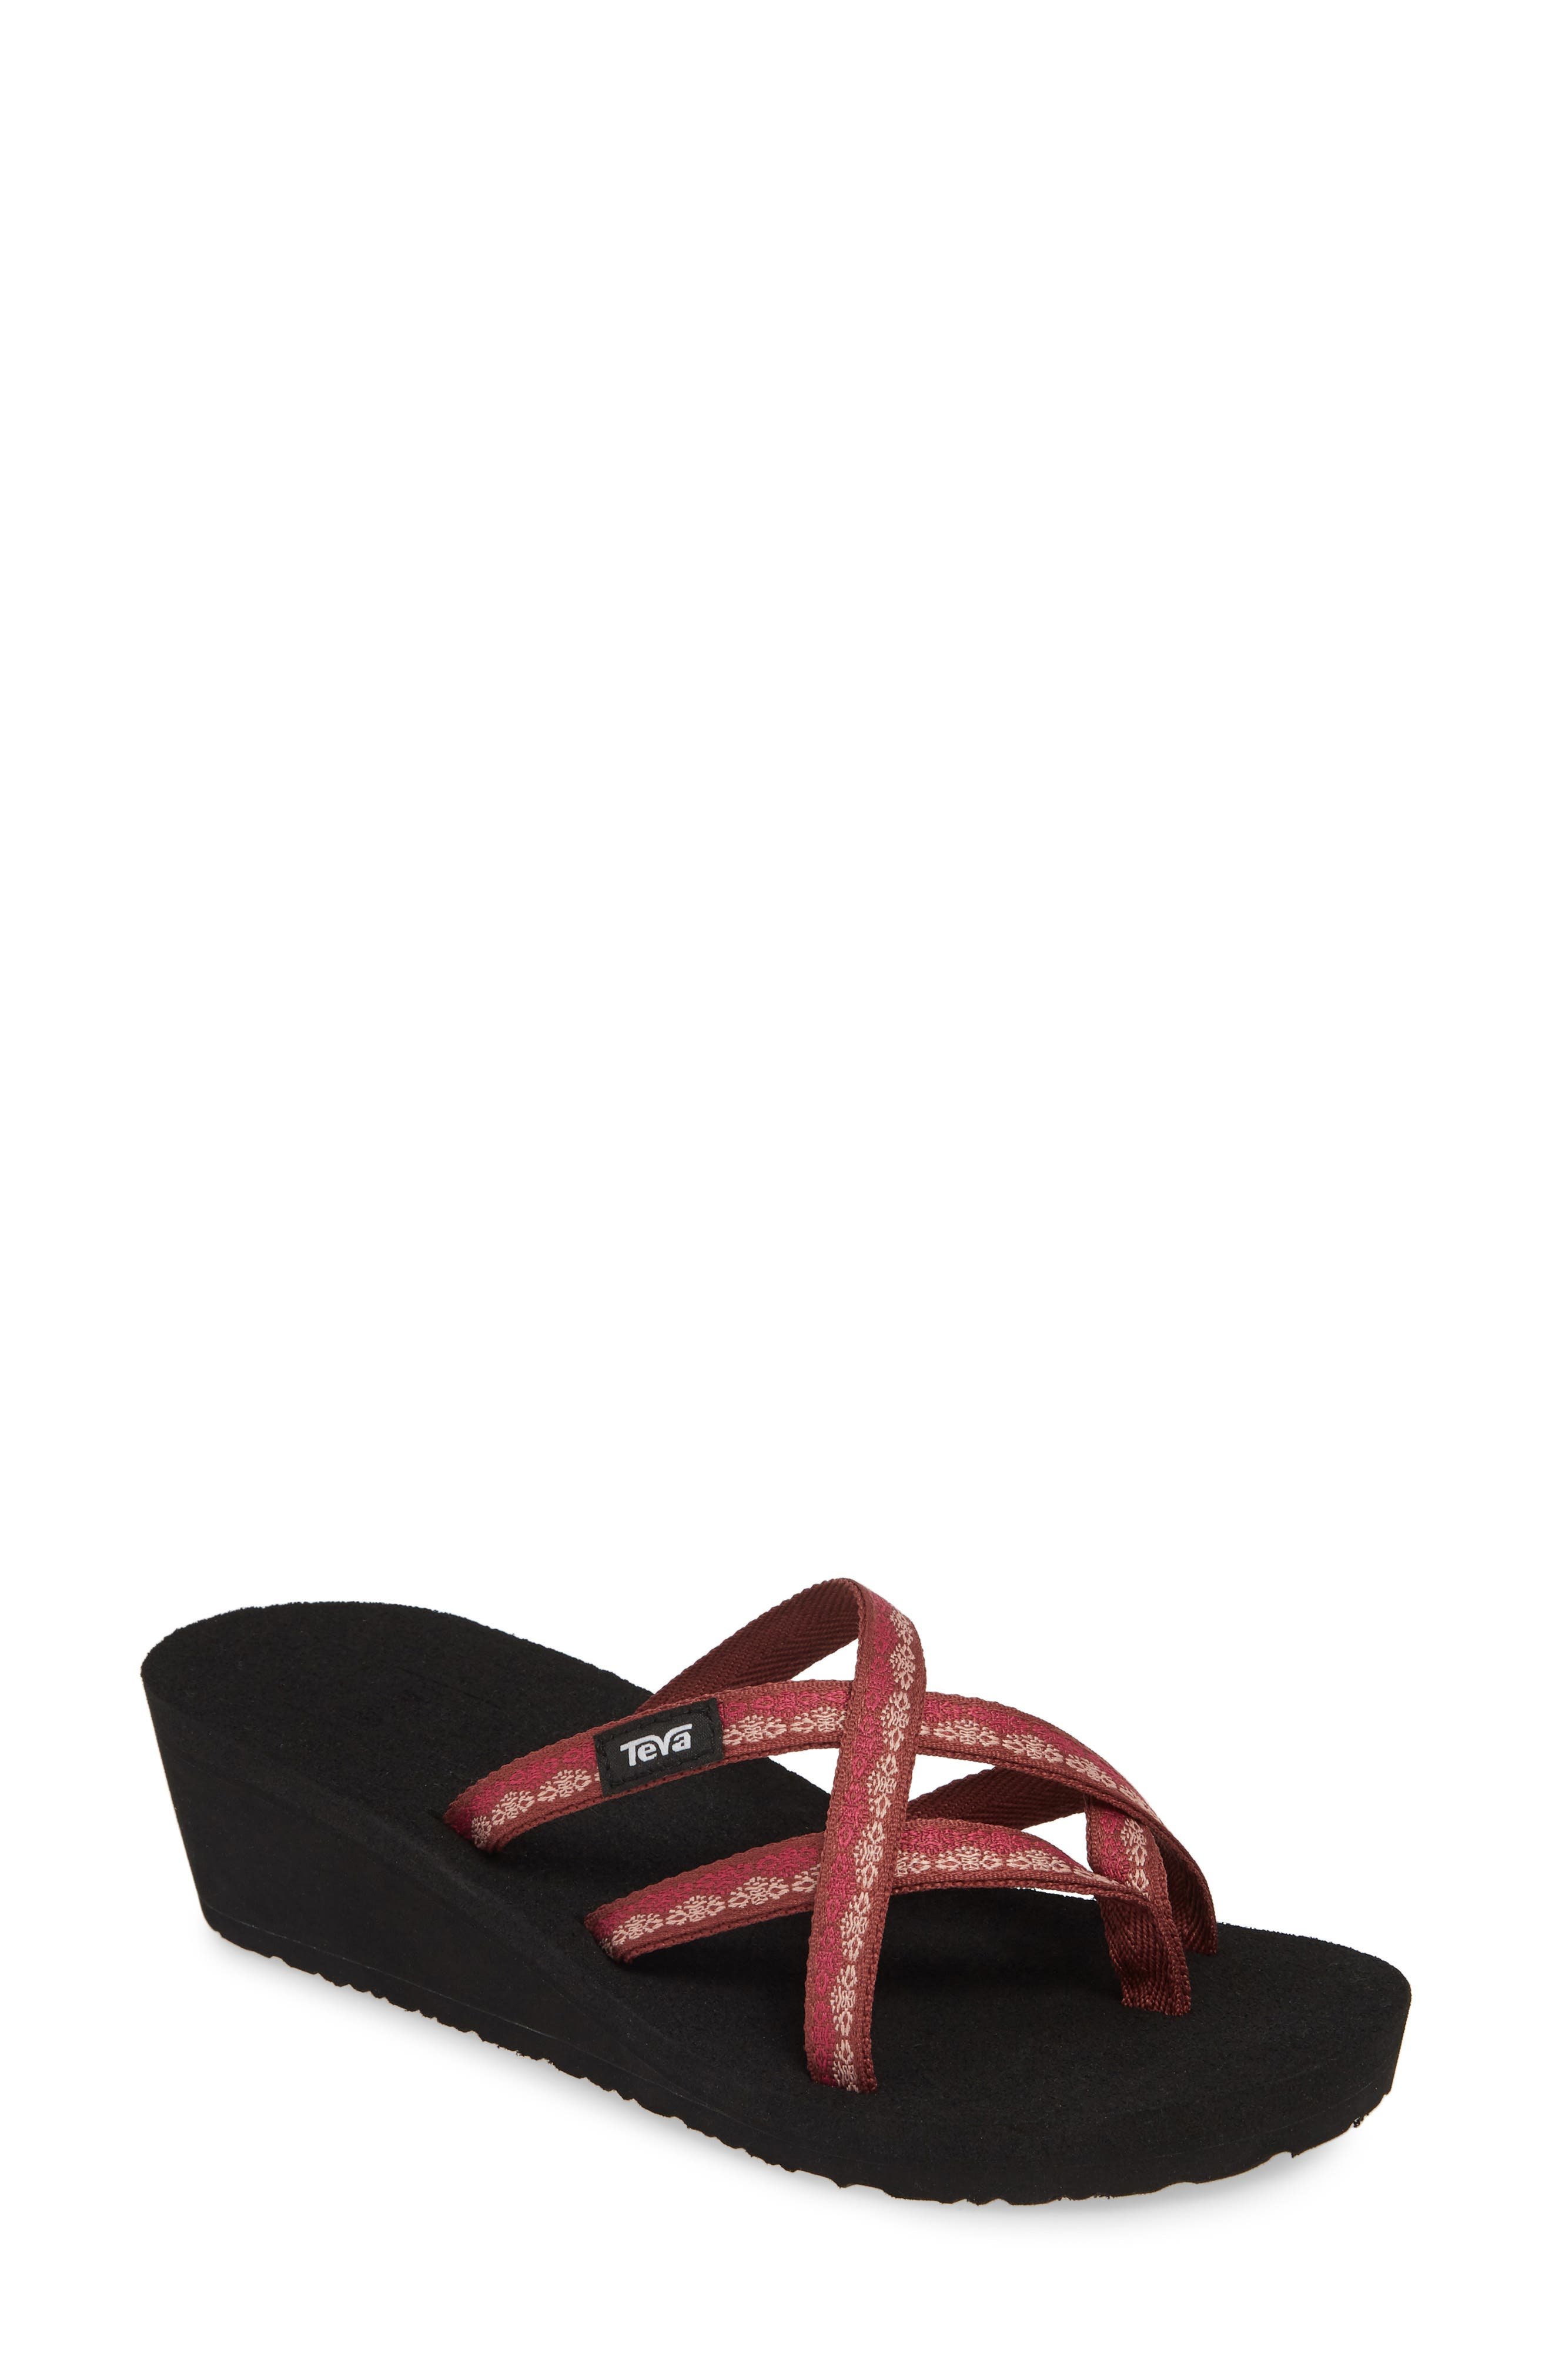 1e776727f72 Women s Teva Wedge Sandals